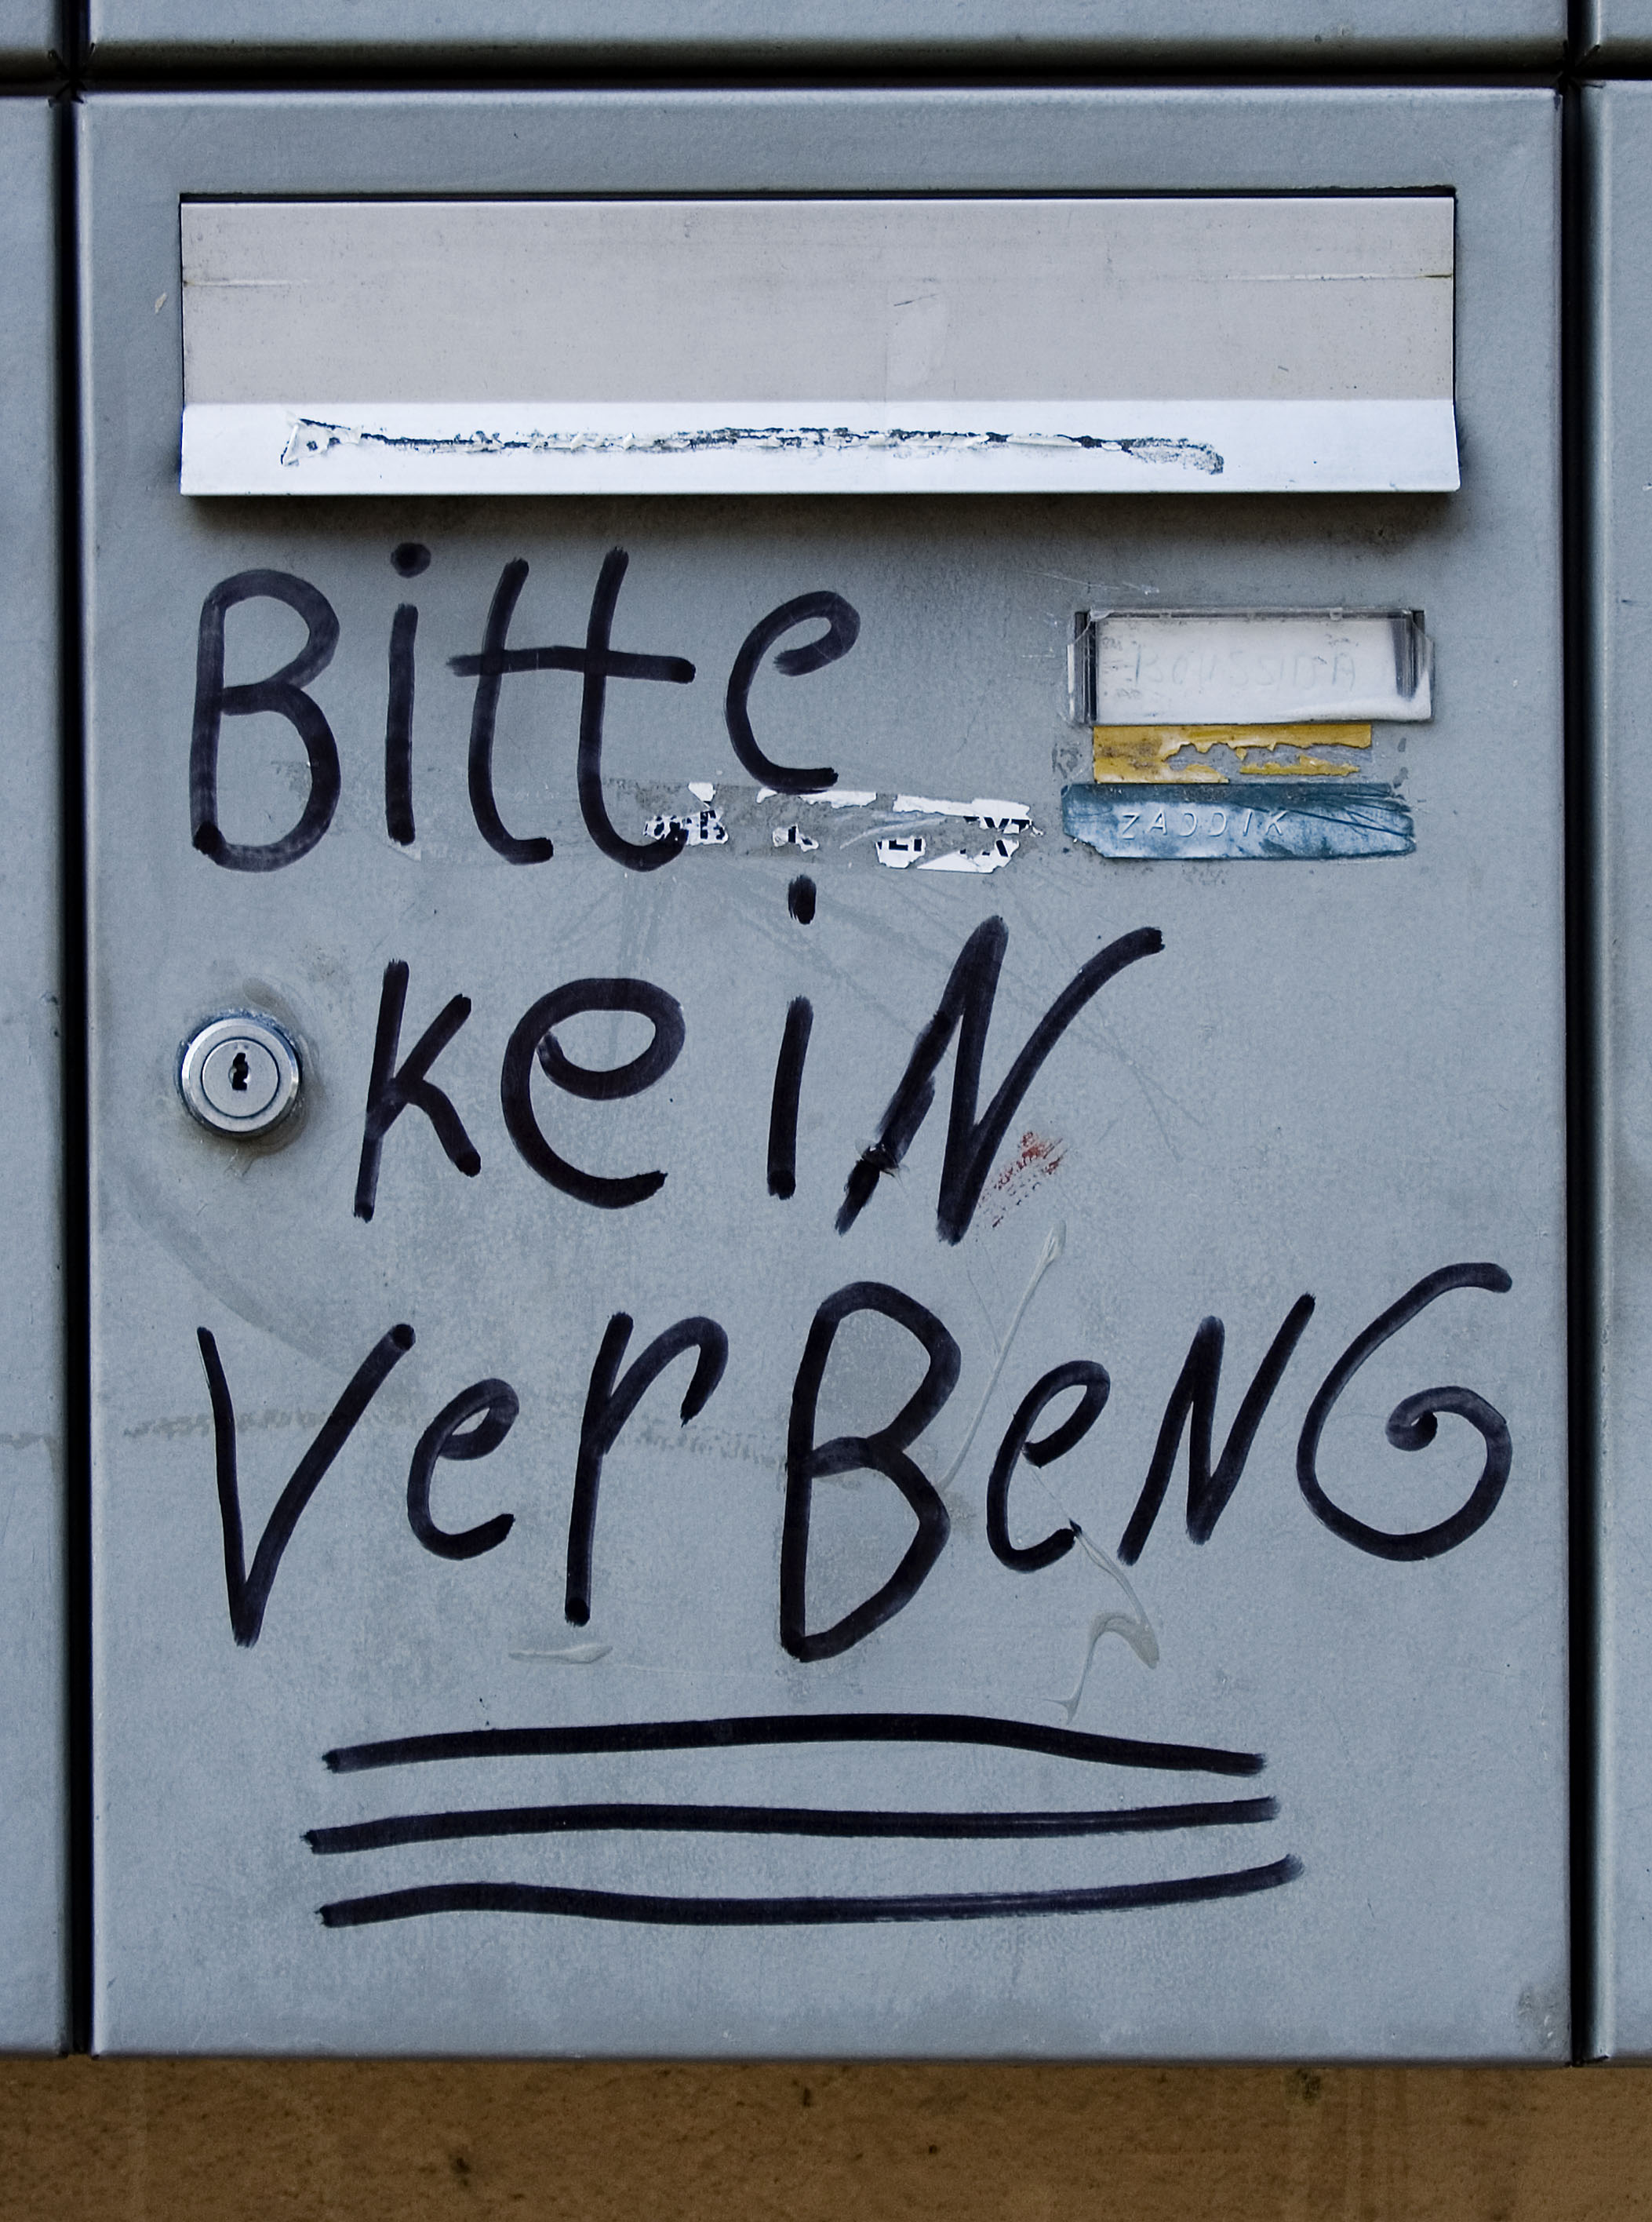 "Briefkasten mit falsch geschreibener Bitte: BITTE KEINE WEBUNG. Geschrieben ""Bitte kein Verbeng"", Reklame, Papiermuell, Verbot, PISA-Studie, Analphabetismus *** Local Caption *** +++ www.wrongside-pictures.de +++ copyright: www.wrongside-pictures.de / Frank Pindor +++"